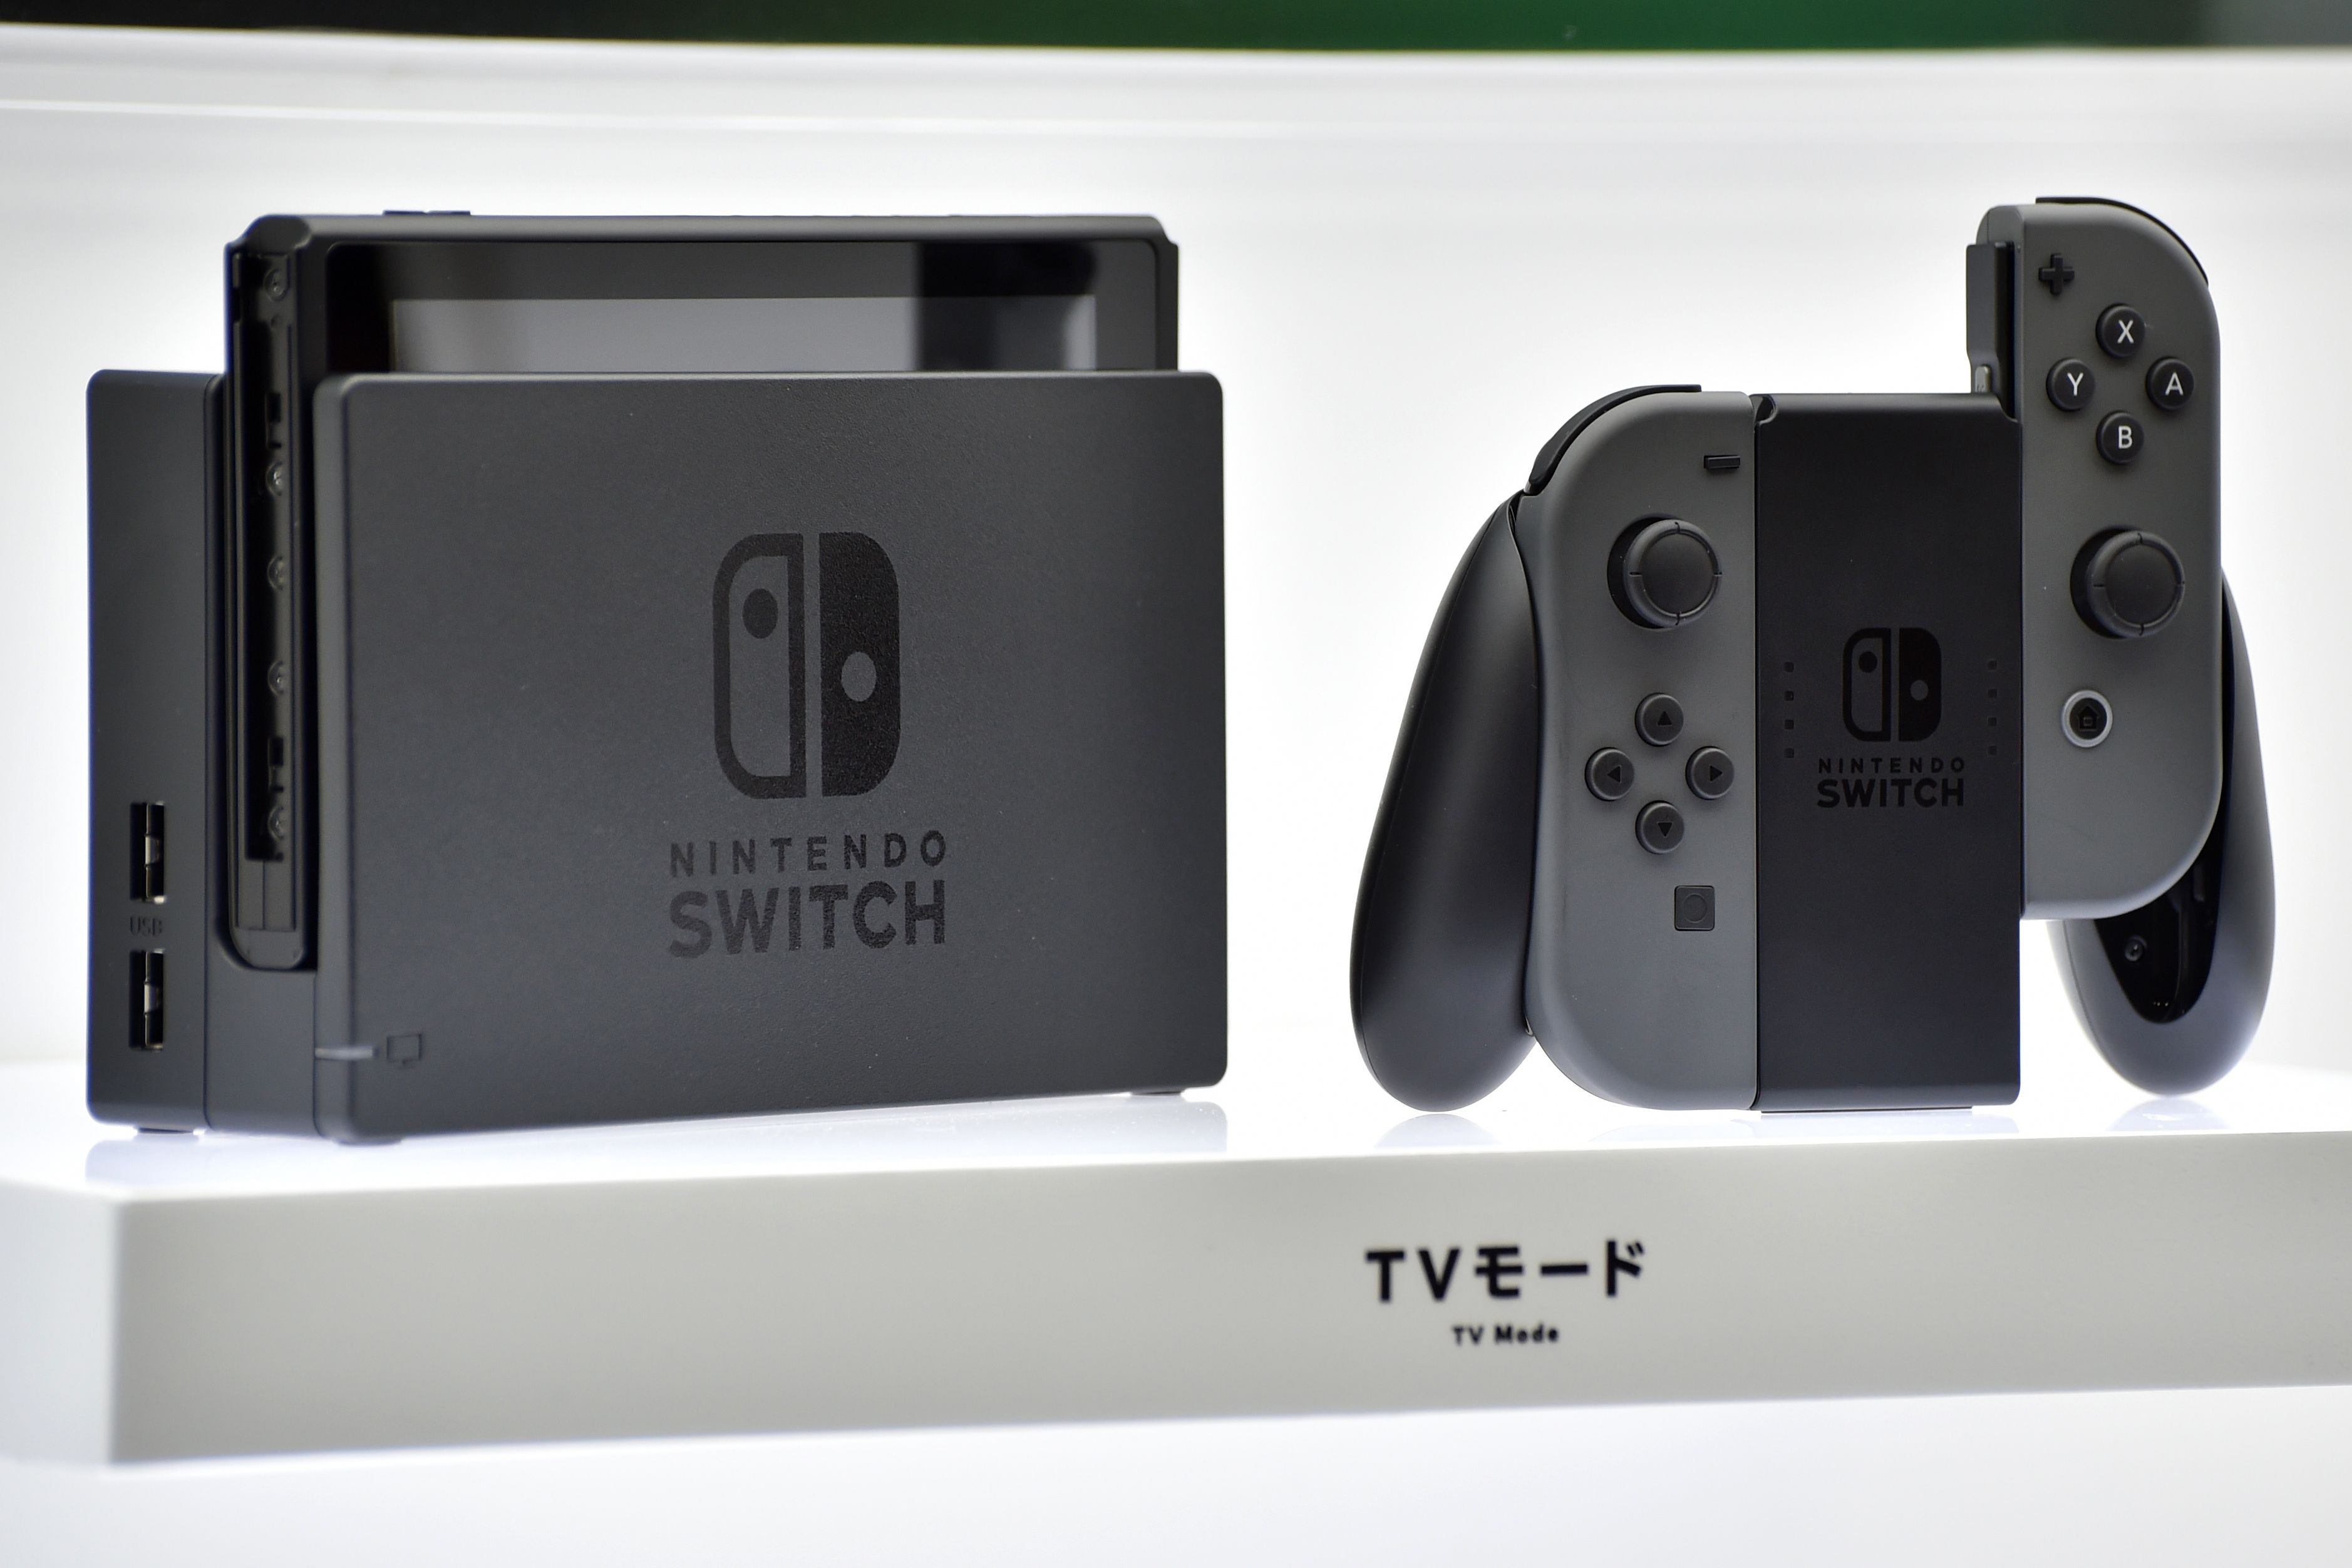 Nintendo's new video game console Switch is displayed at a presentation in Tokyo on January 13, 2017.                      Nintendo on January 13 unveiled its new Switch game console, which works both at home and on-the-go, as it looks to offset disappointing Wii U sales and go head to head with rival Sony's hugely popular PlayStation 4. / AFP / Kazuhiro NOGI        (Photo credit should read KAZUHIRO NOGI/AFP/Getty Images)